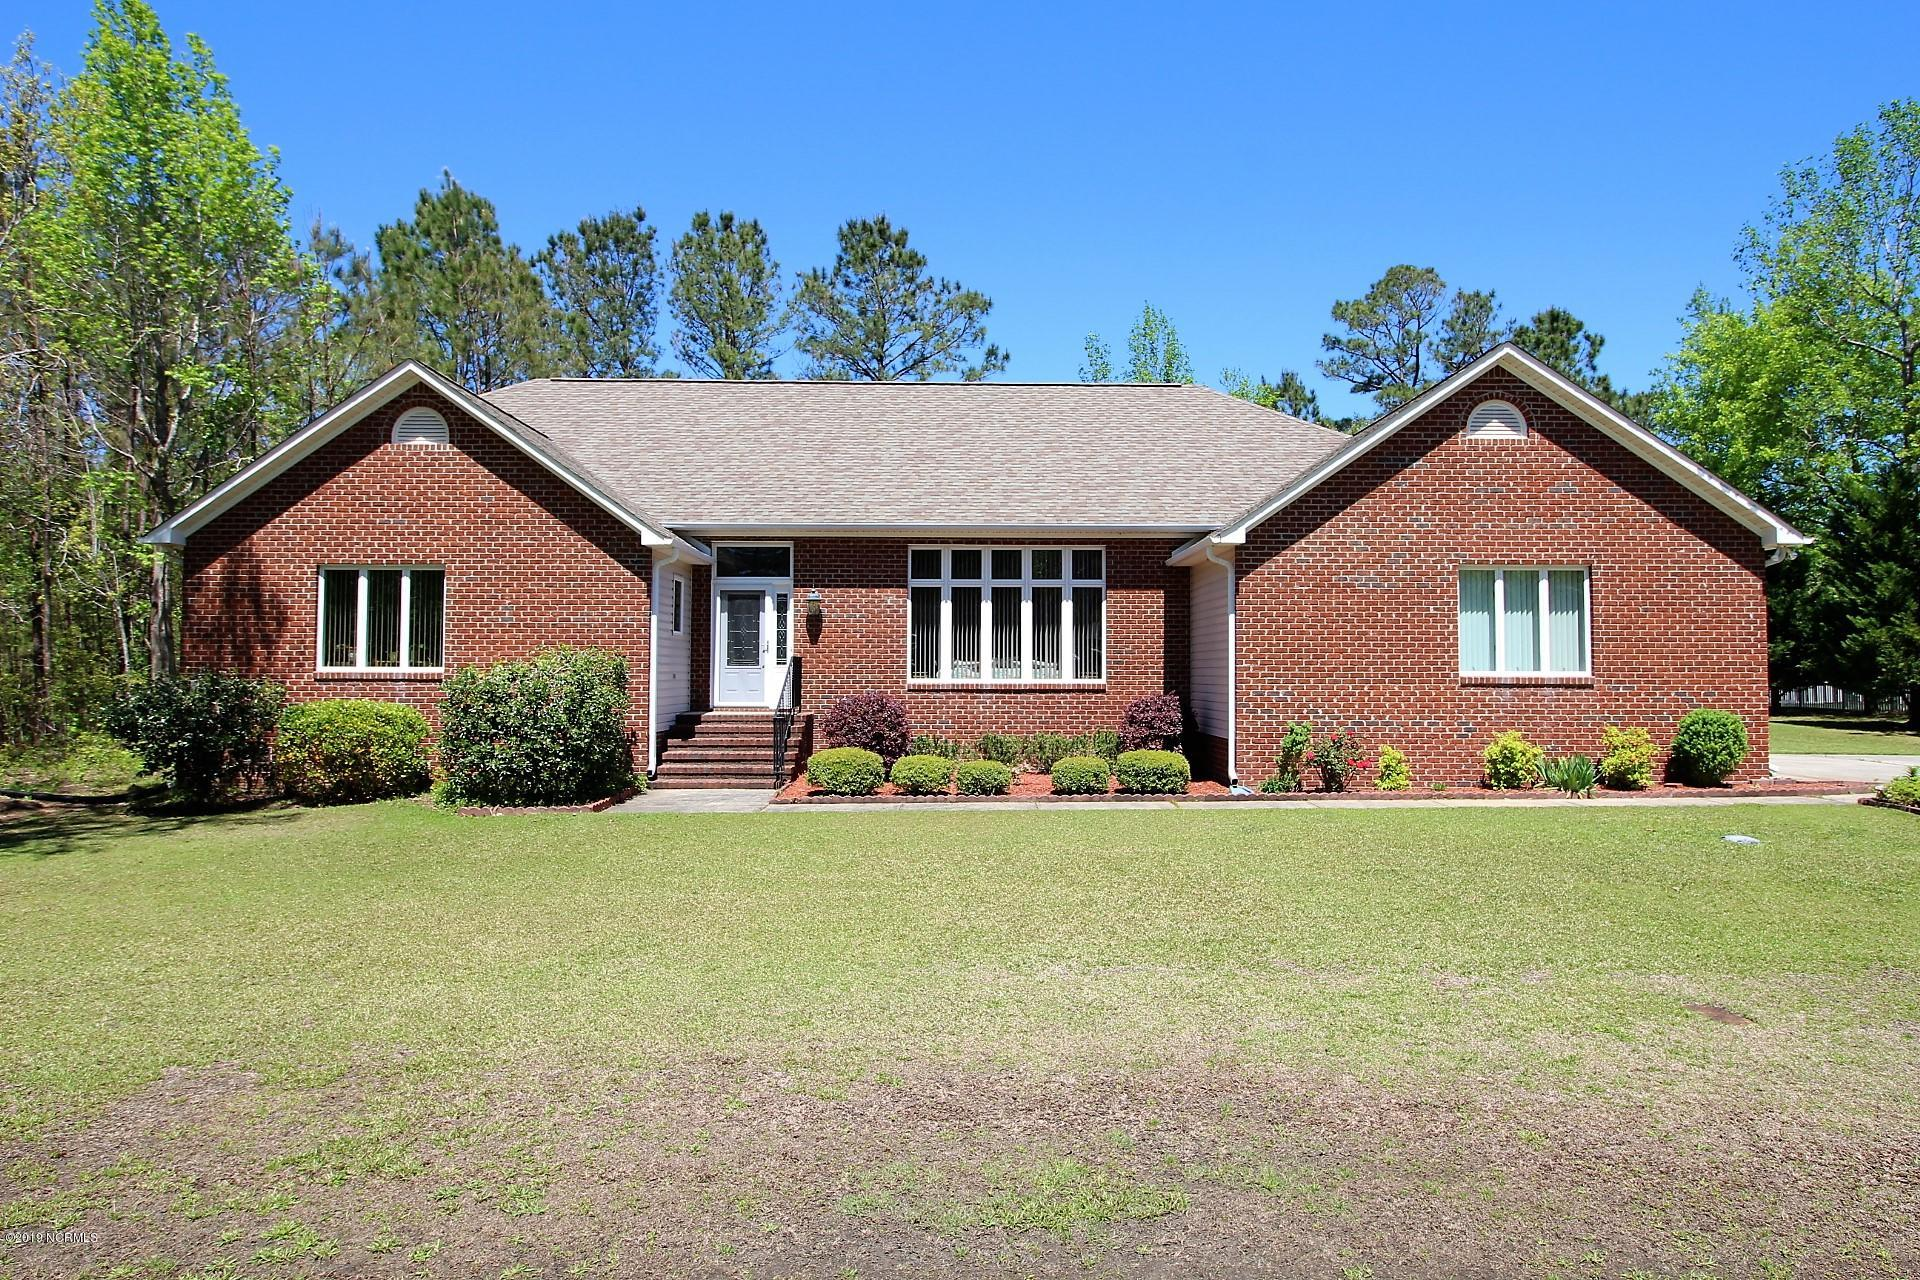 305 War Admiral Drive, Havelock, North Carolina, 4 Bedrooms Bedrooms, 11 Rooms Rooms,3 BathroomsBathrooms,Single family residence,For sale,War Admiral,100161051